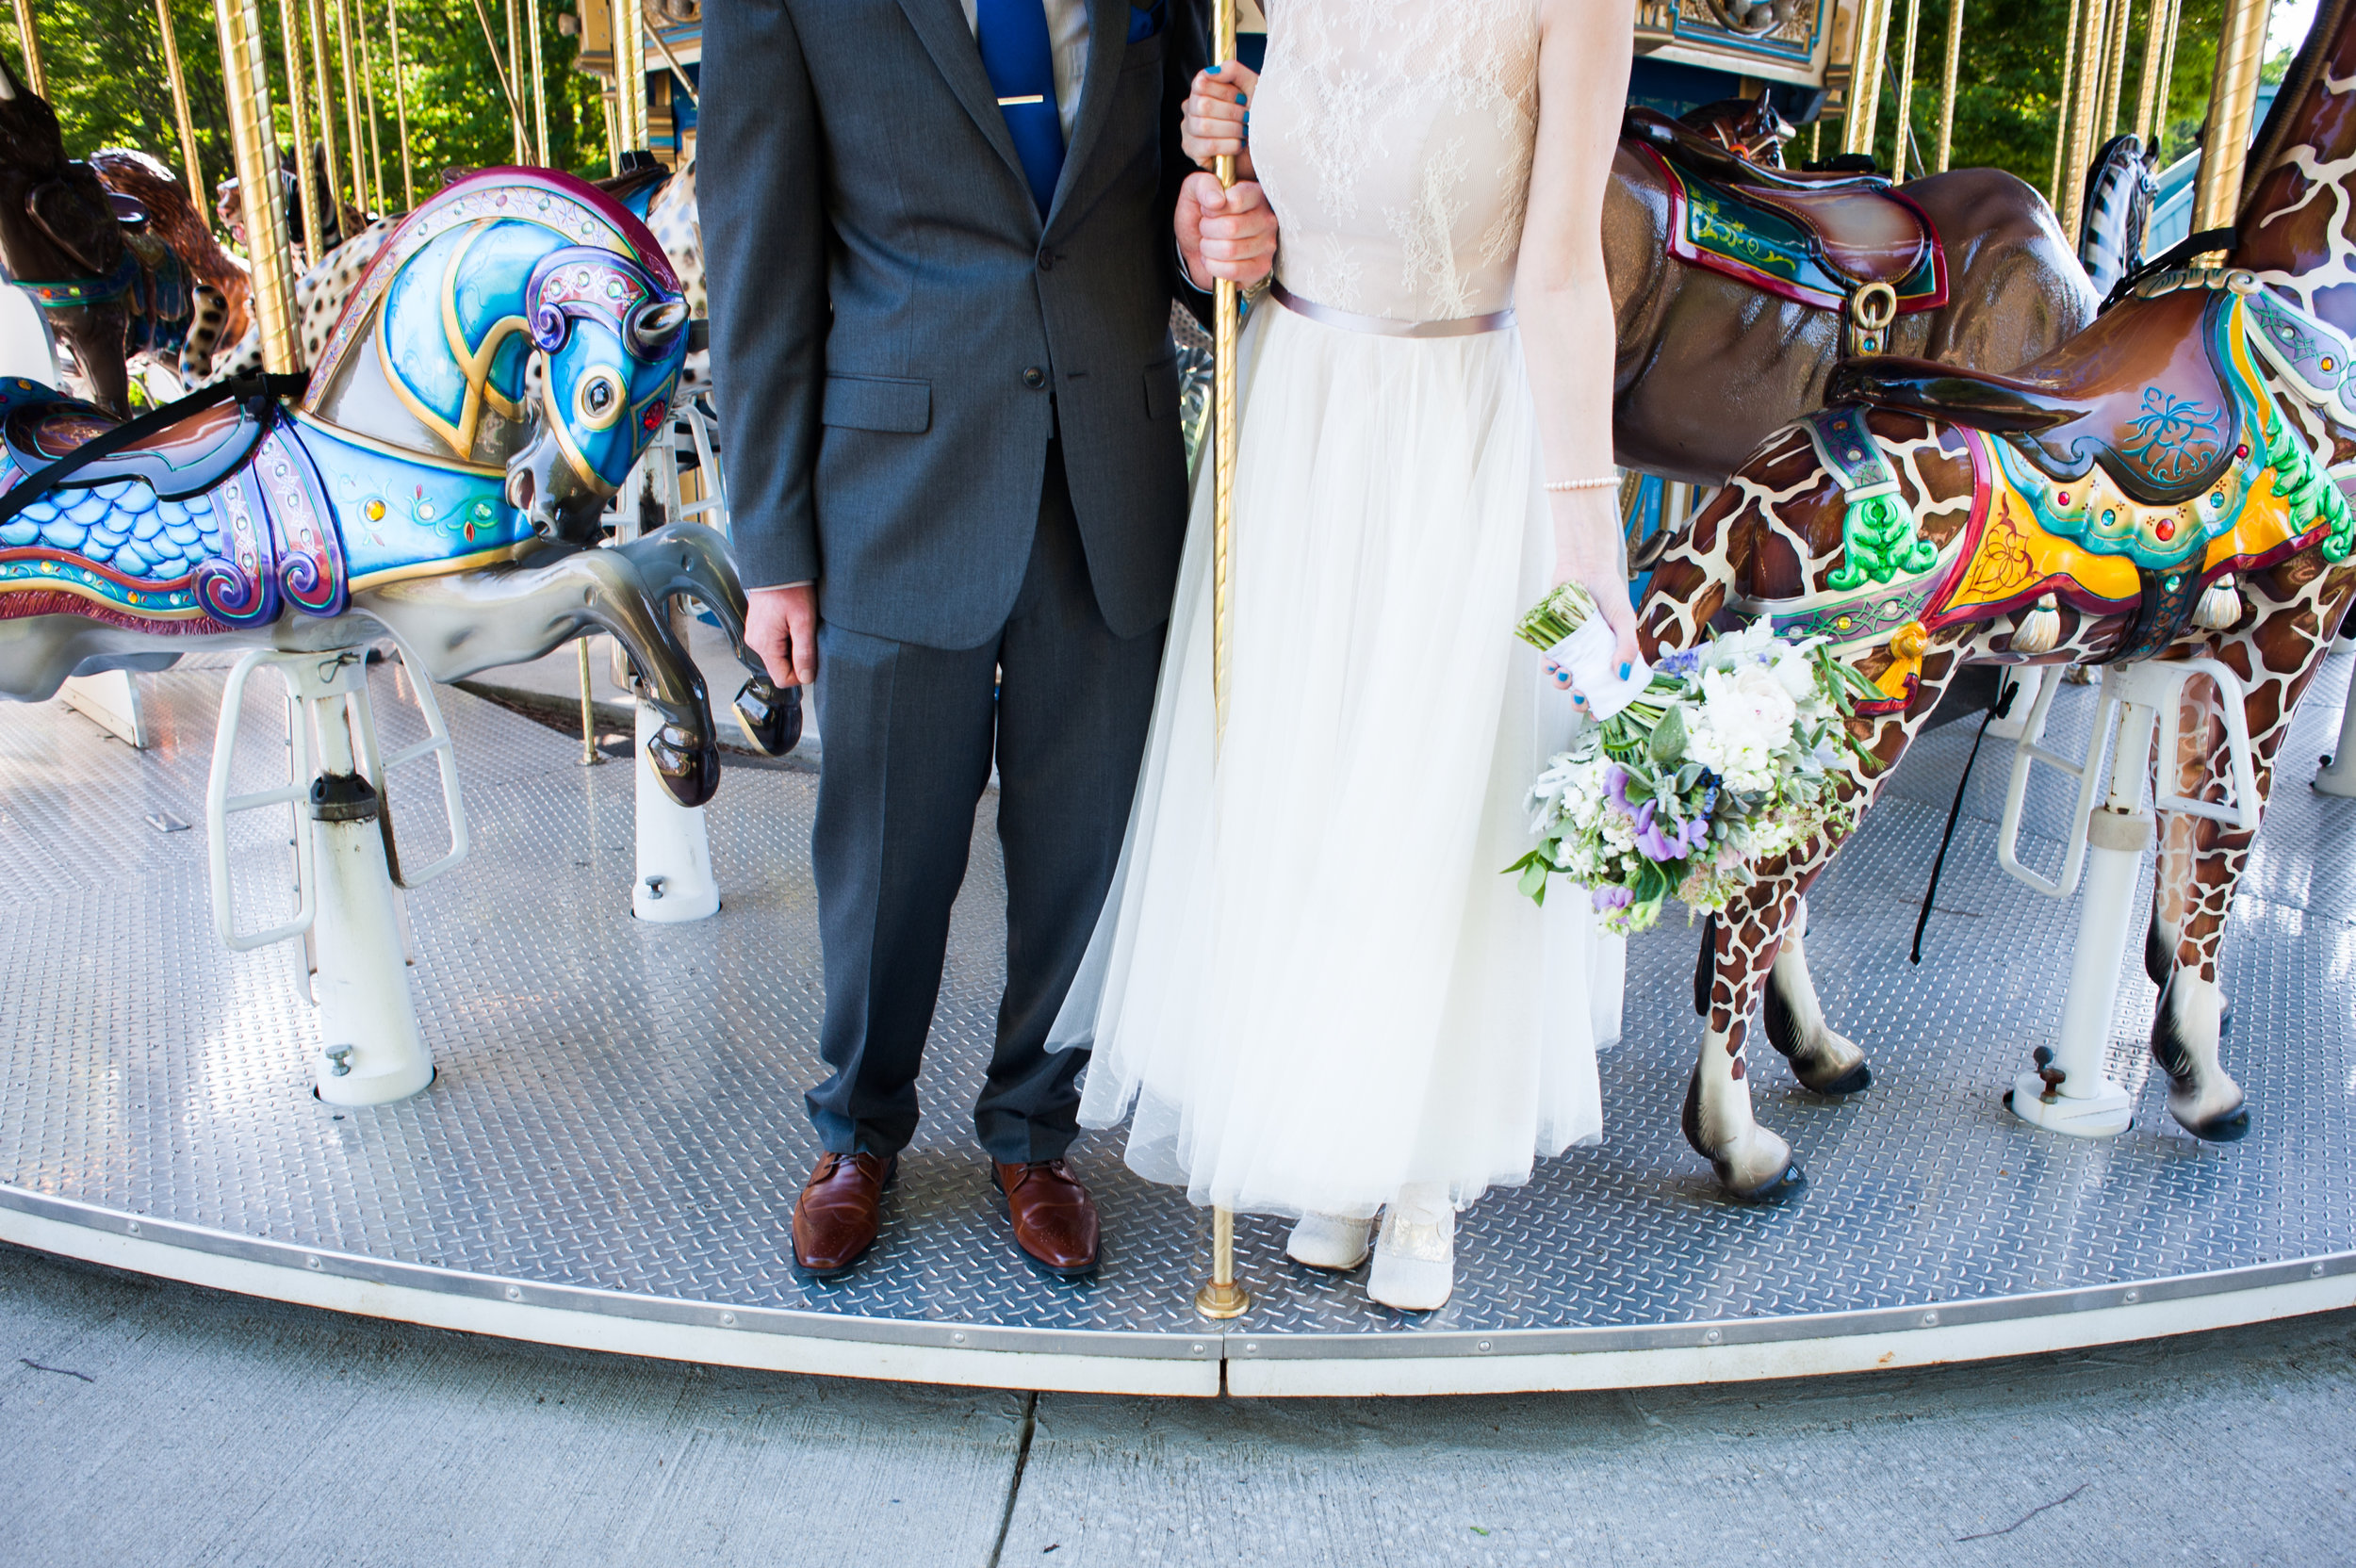 Couple on carousel at the Baltimore Zoo